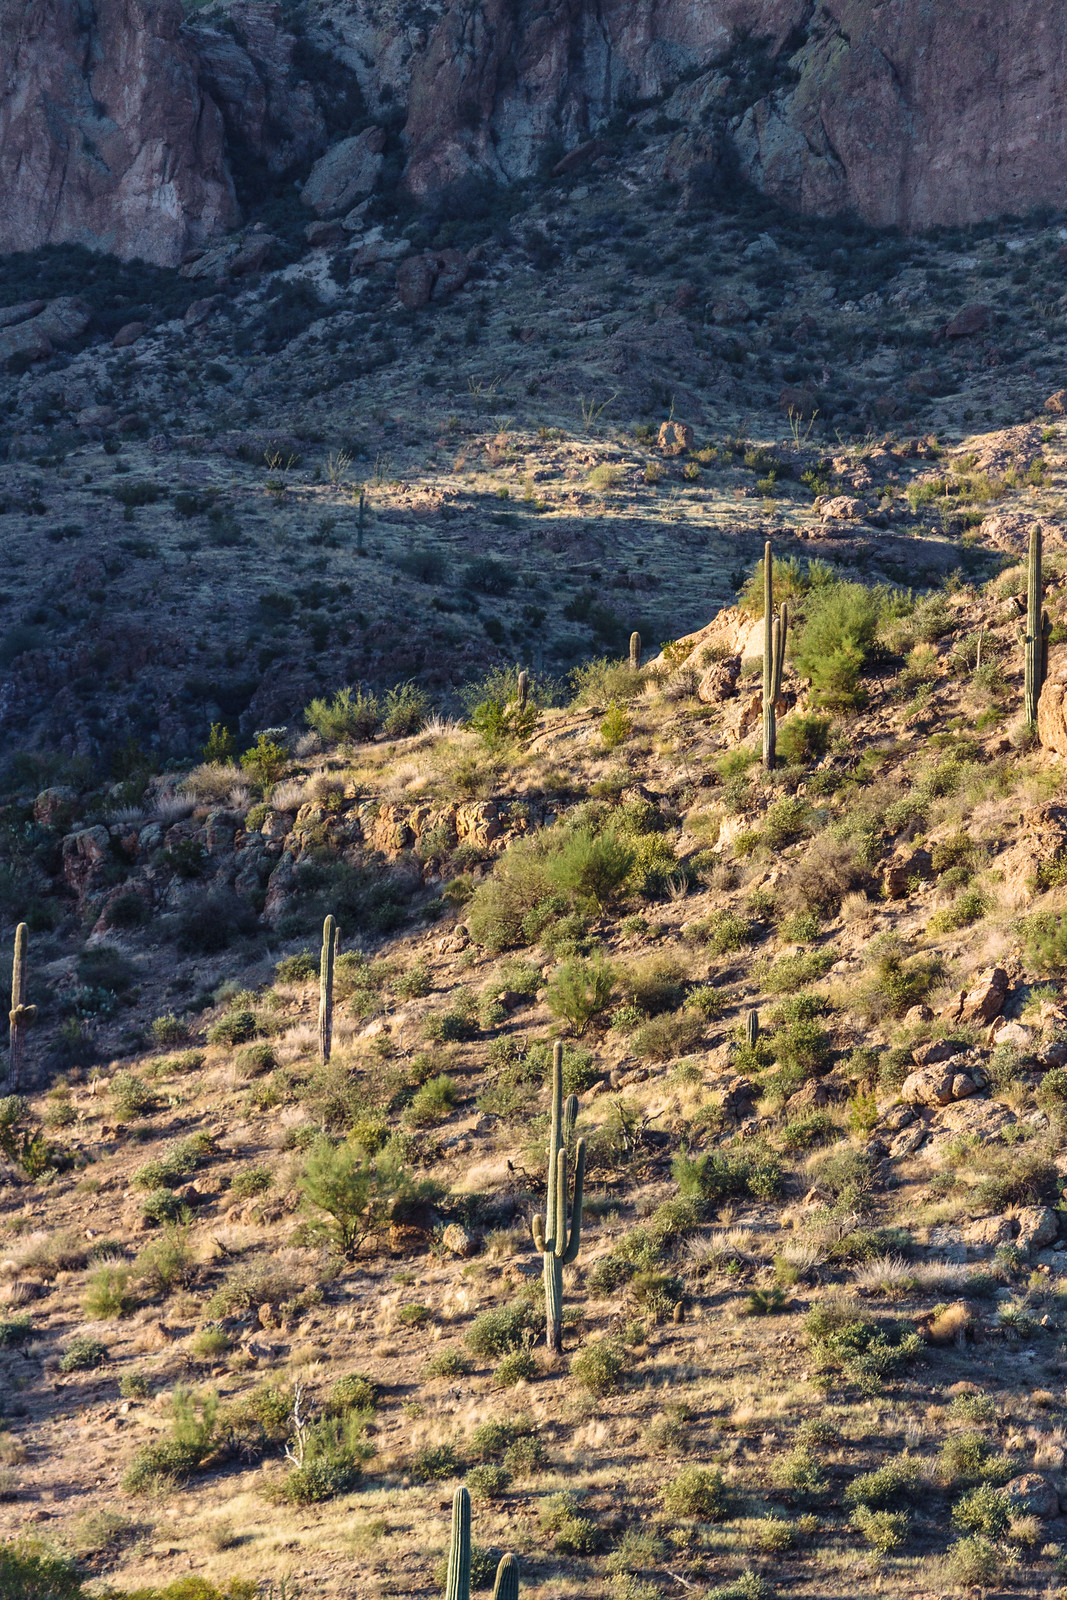 Saguaro cactuses growing on a hillside partly in sunshine and partly in shadows